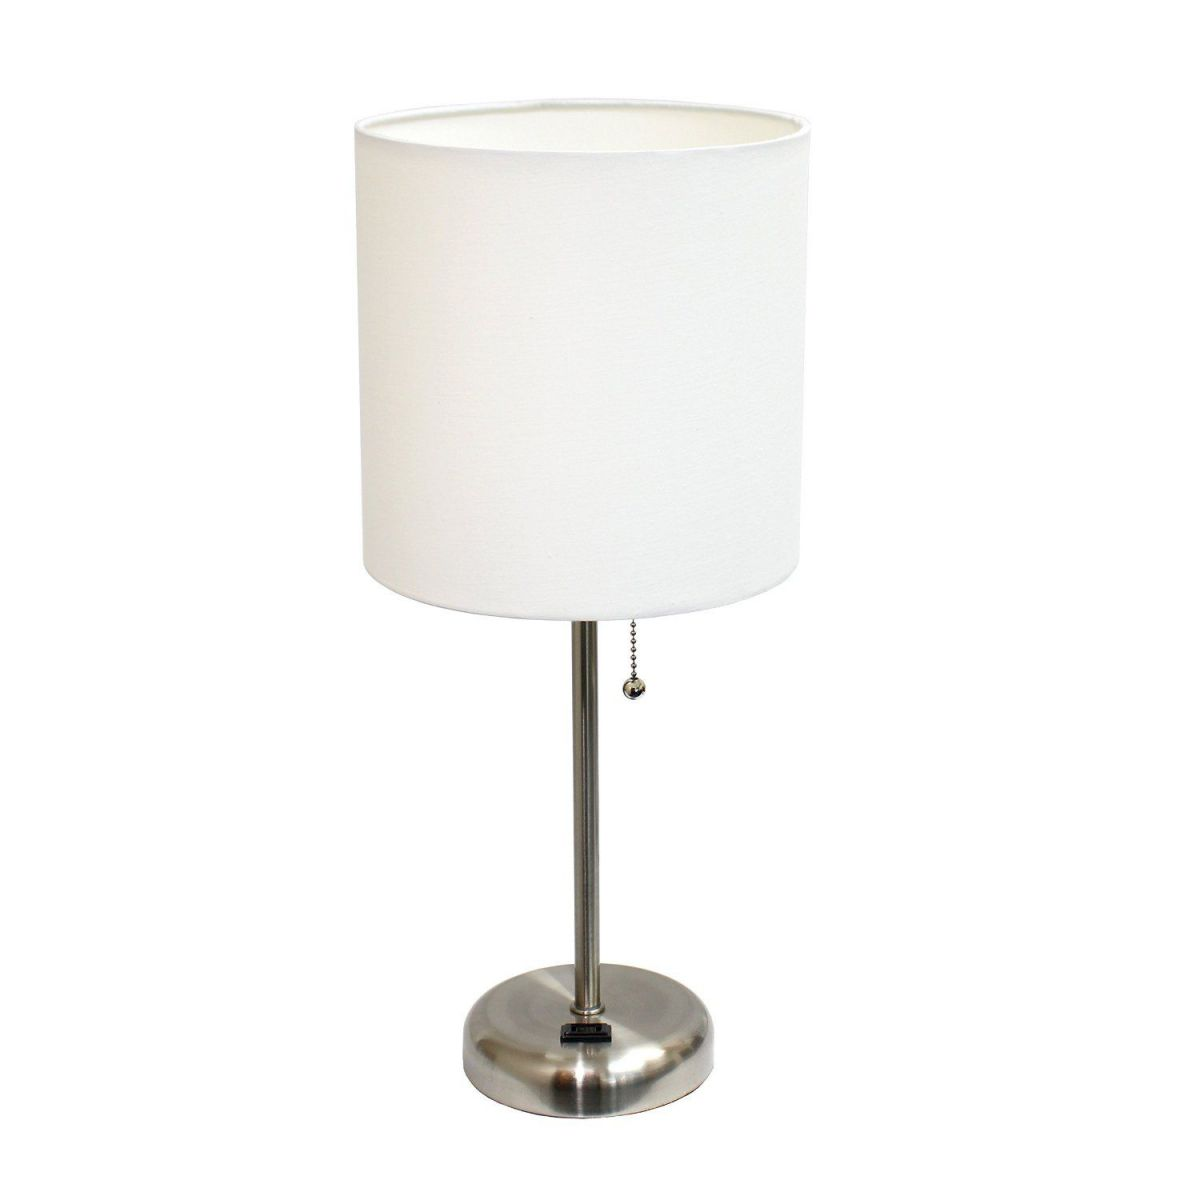 limelights lt2024 wht stick lamp with charging outlet and fabric shade. Black Bedroom Furniture Sets. Home Design Ideas